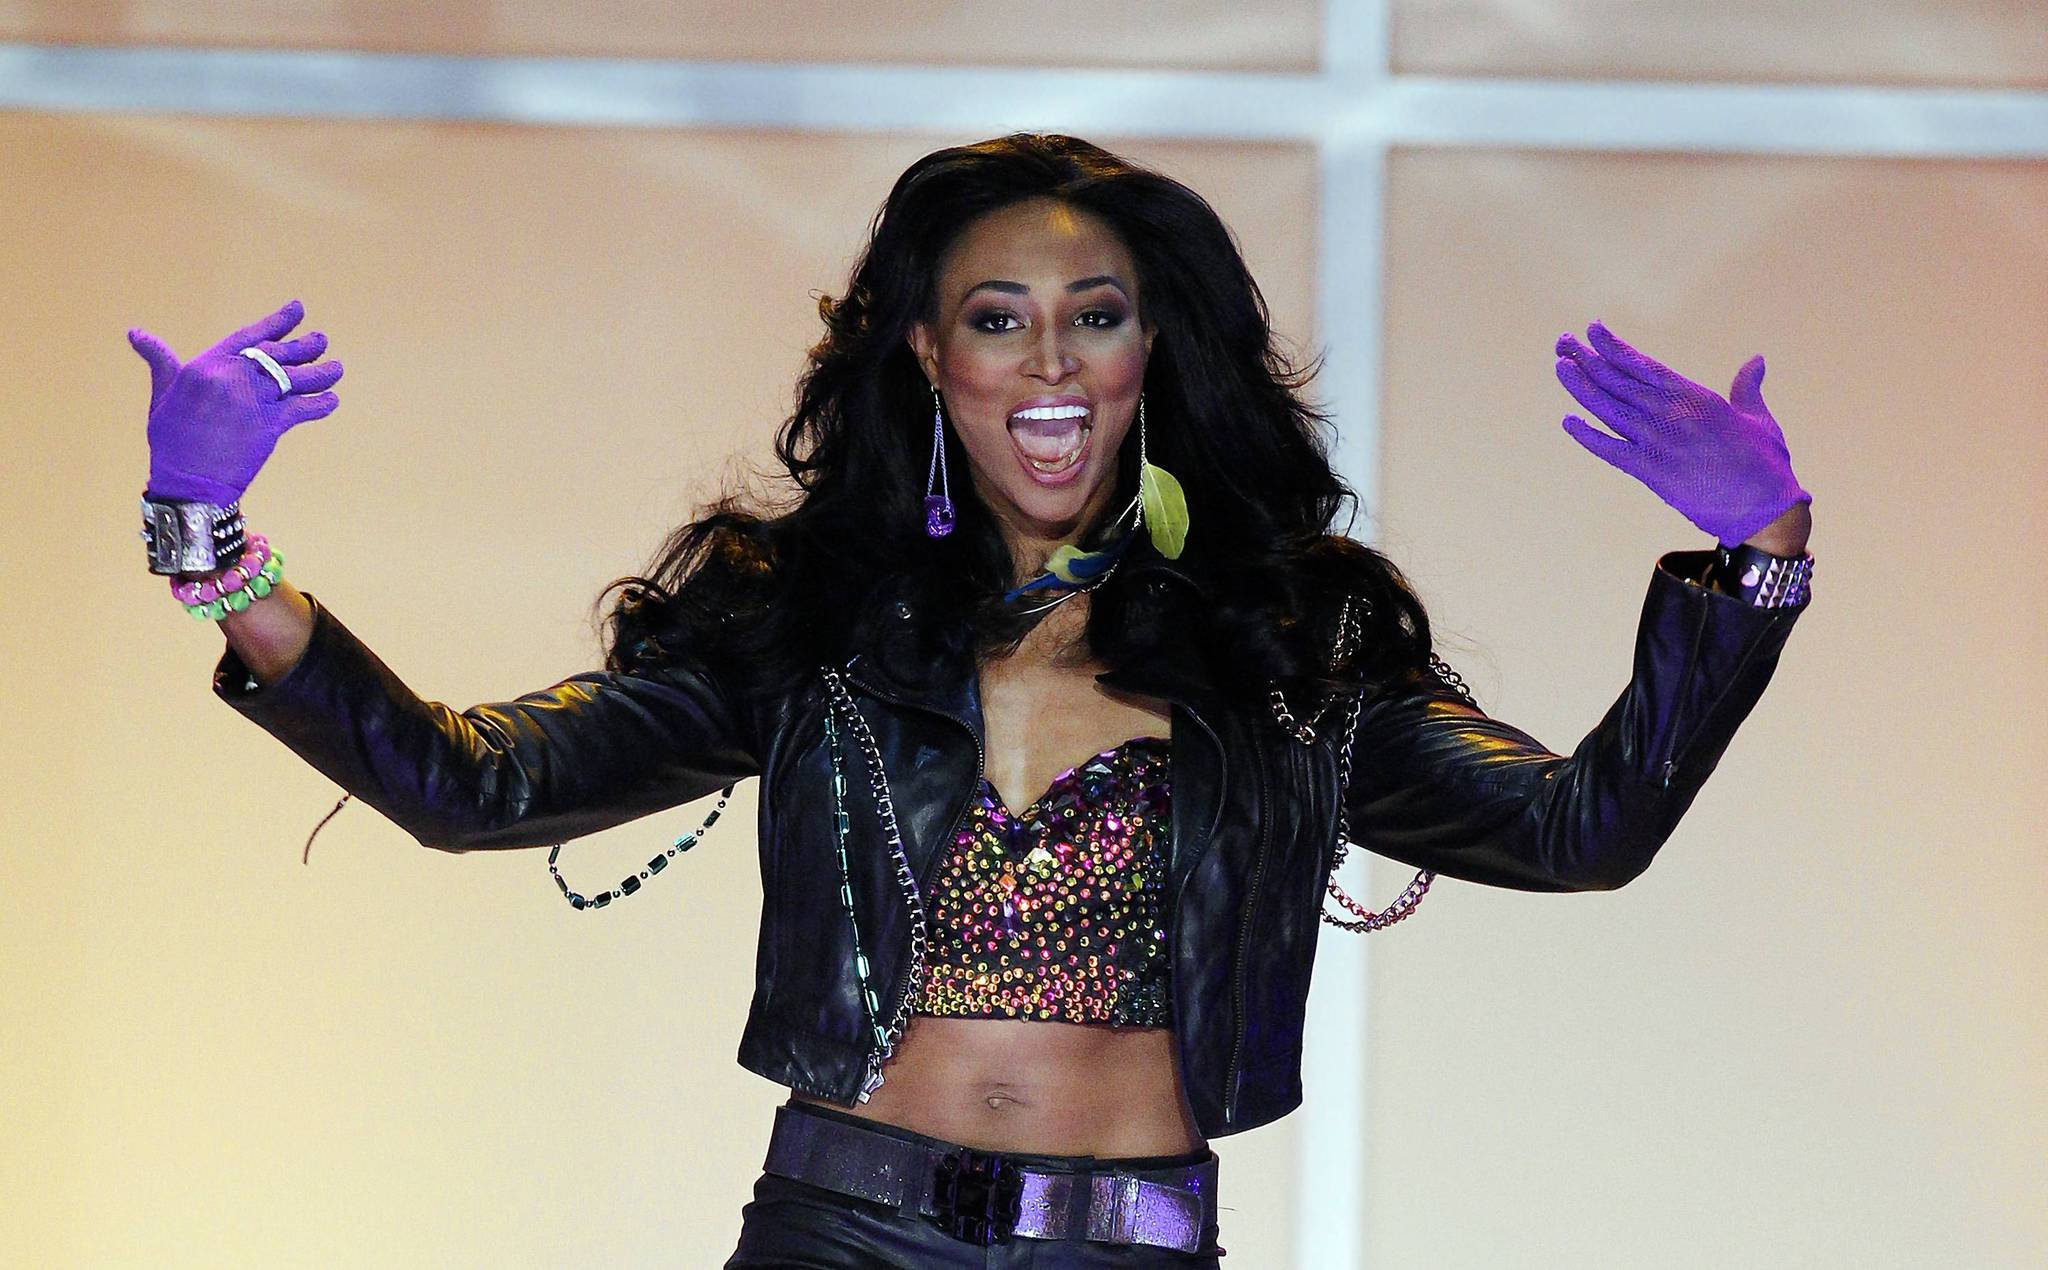 Miss Maryland USA Nana Meriwether participates in the opening fashion show of the 2012 Miss USA pageant at the Planet Hollywood Resort & Casino in Las Vegas.